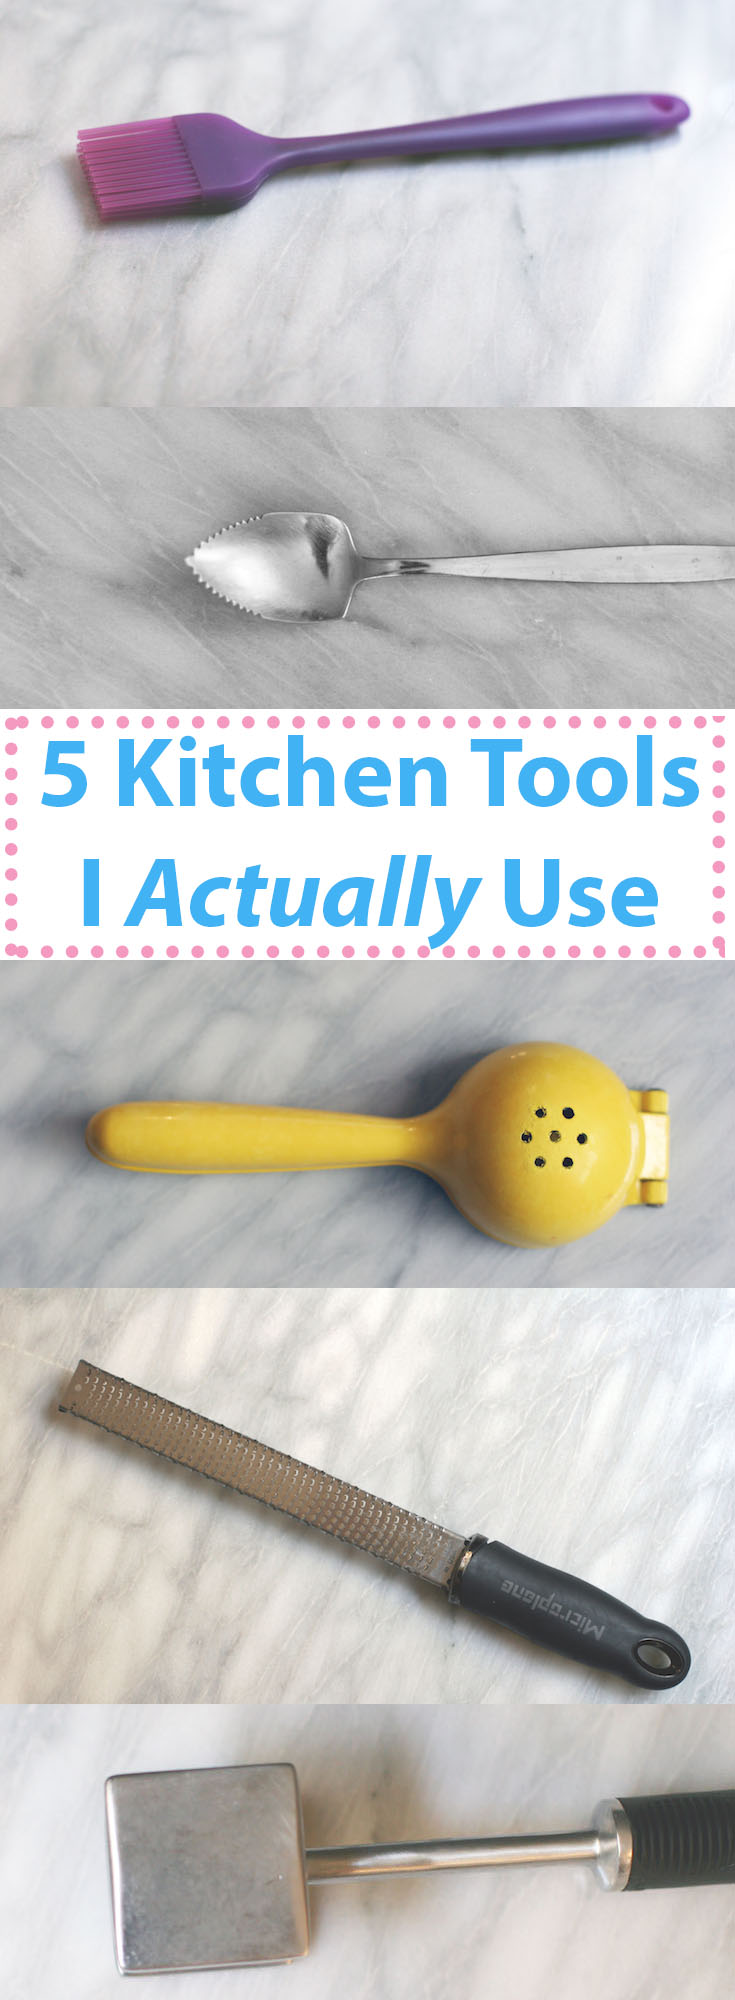 Five Kitchen Tools I Actually Use